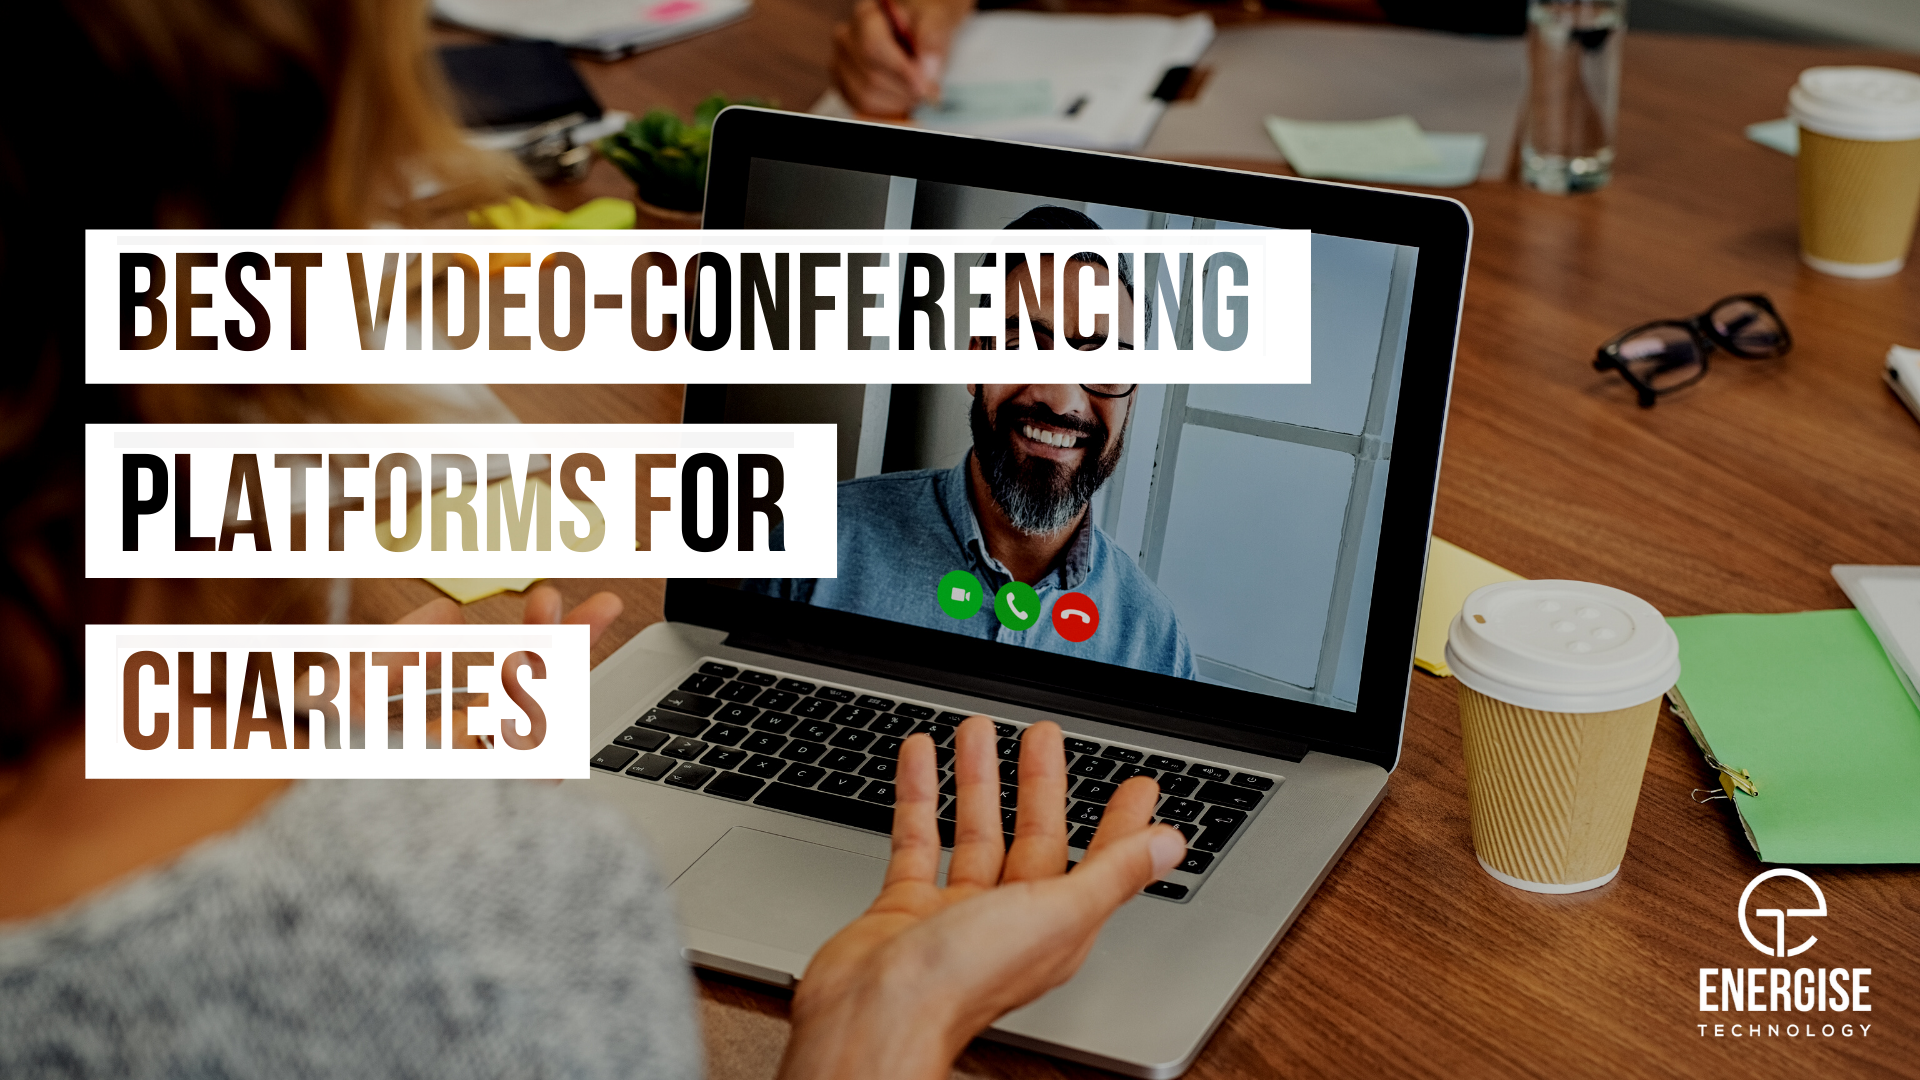 Best video-conferencing software for charities